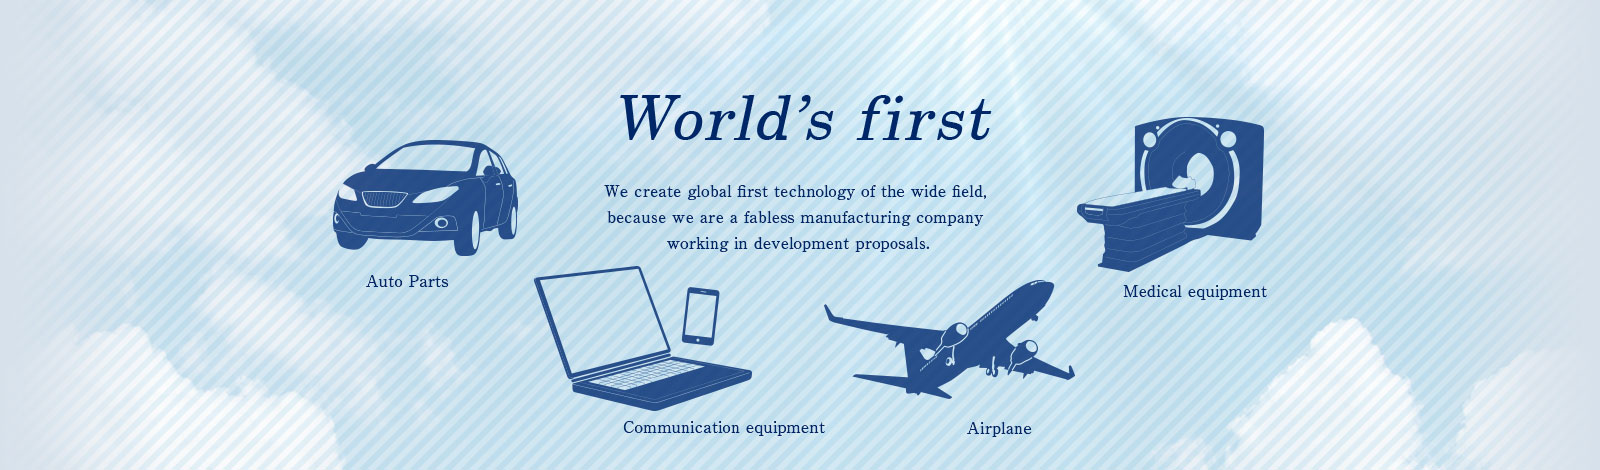 Woorld's first We create global first technology of the wide field, because we are a fabless manufacturing company working in development proposals.